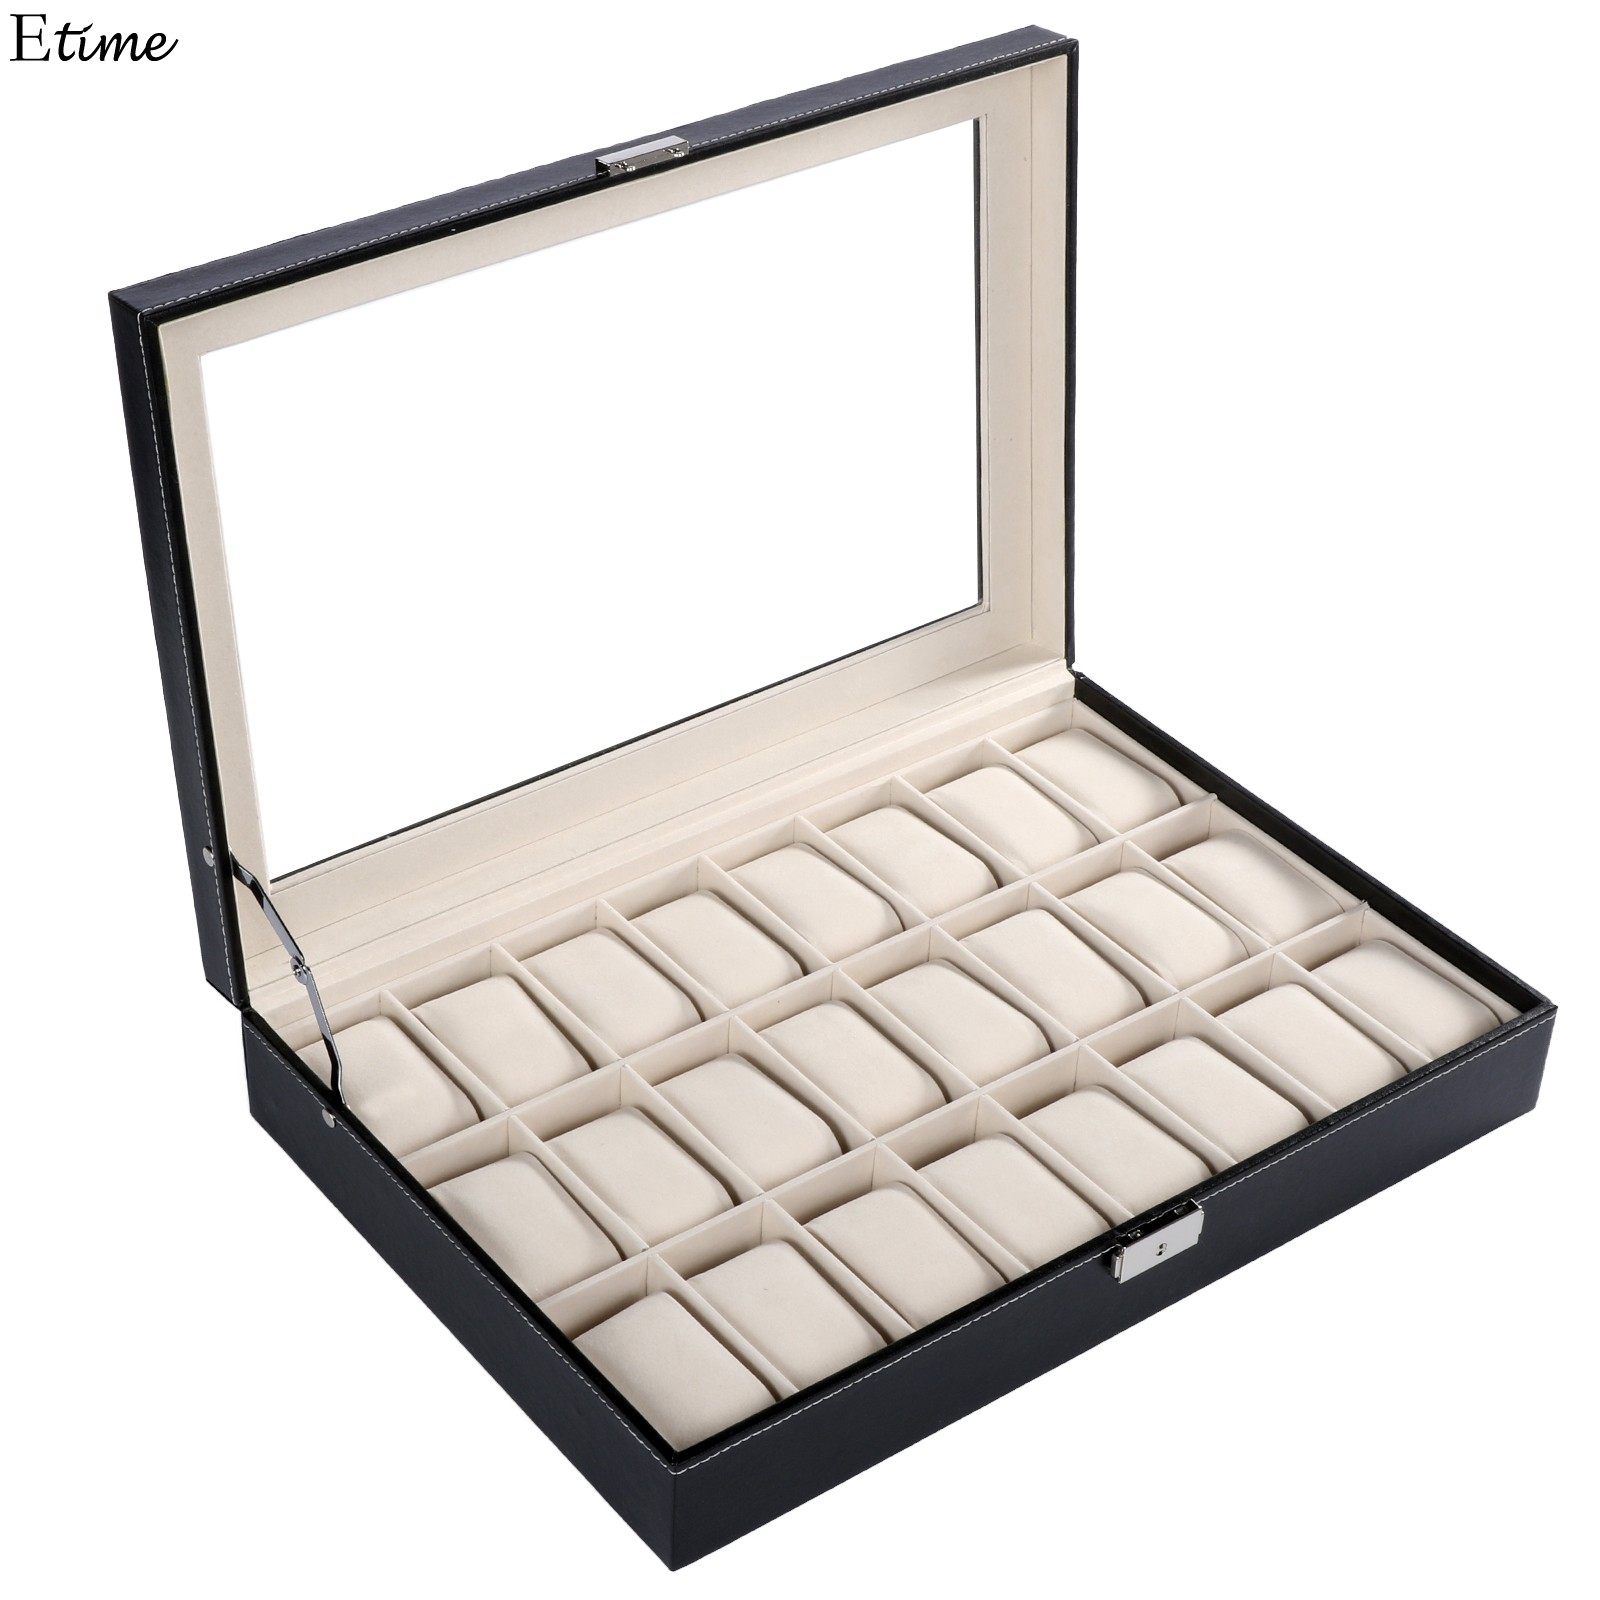 FANALA 24 Grid Watch Box High Quality PU Leather Watch Display Box Jewelry Storage Organizer For Wrist Watches Boite Montre 2018